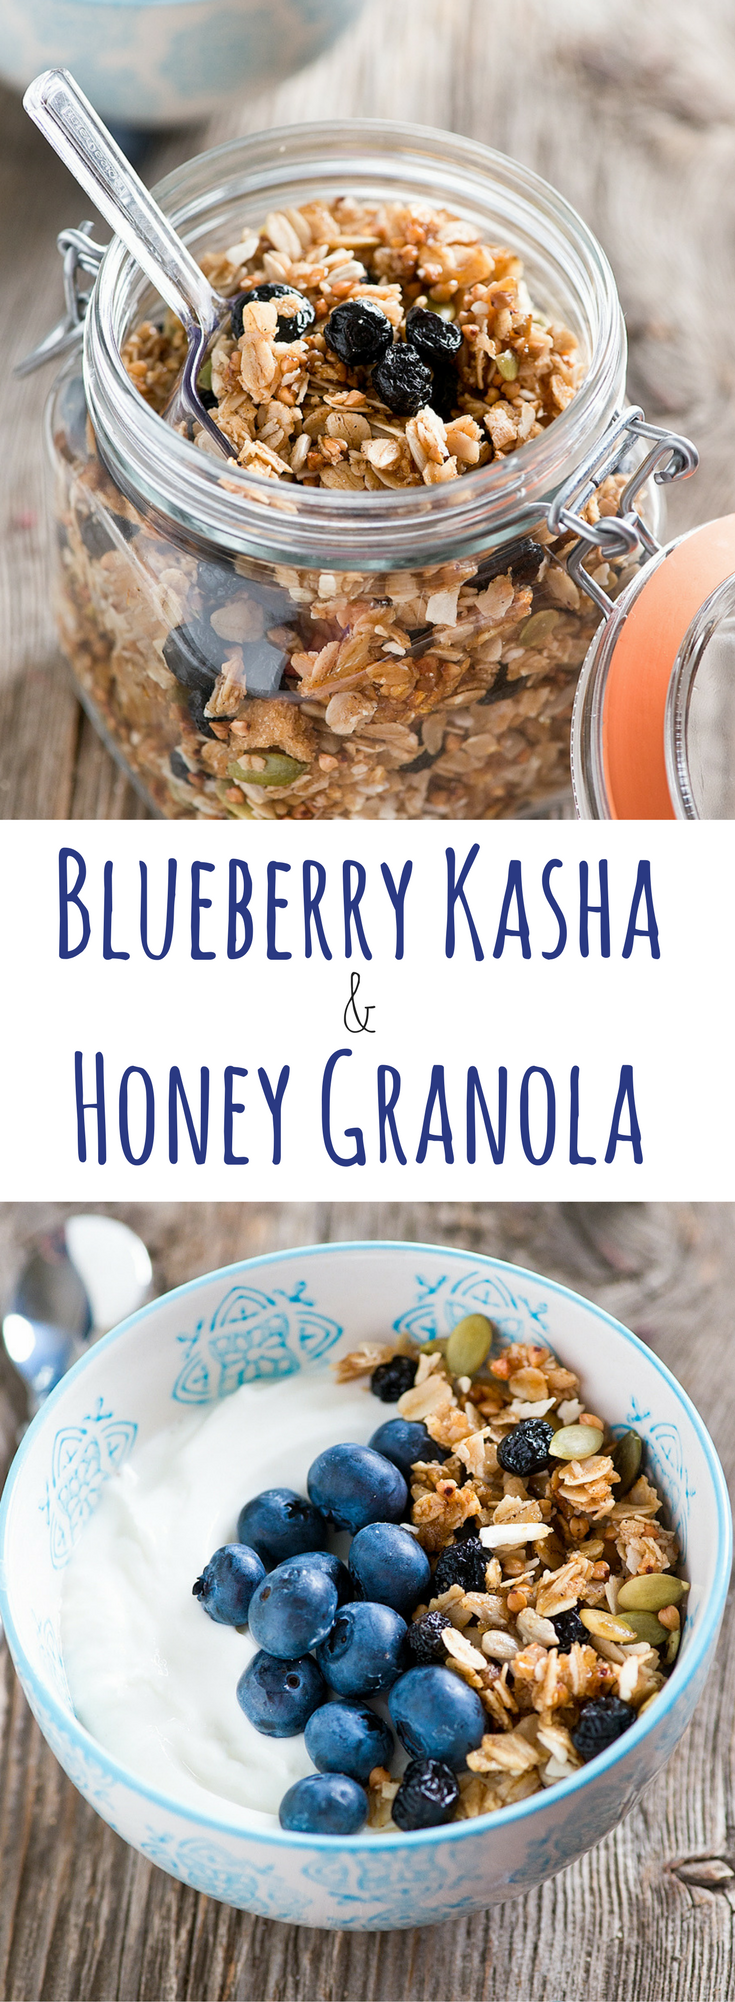 Blueberry Kasha Honey Granola // thislilpiglet.net